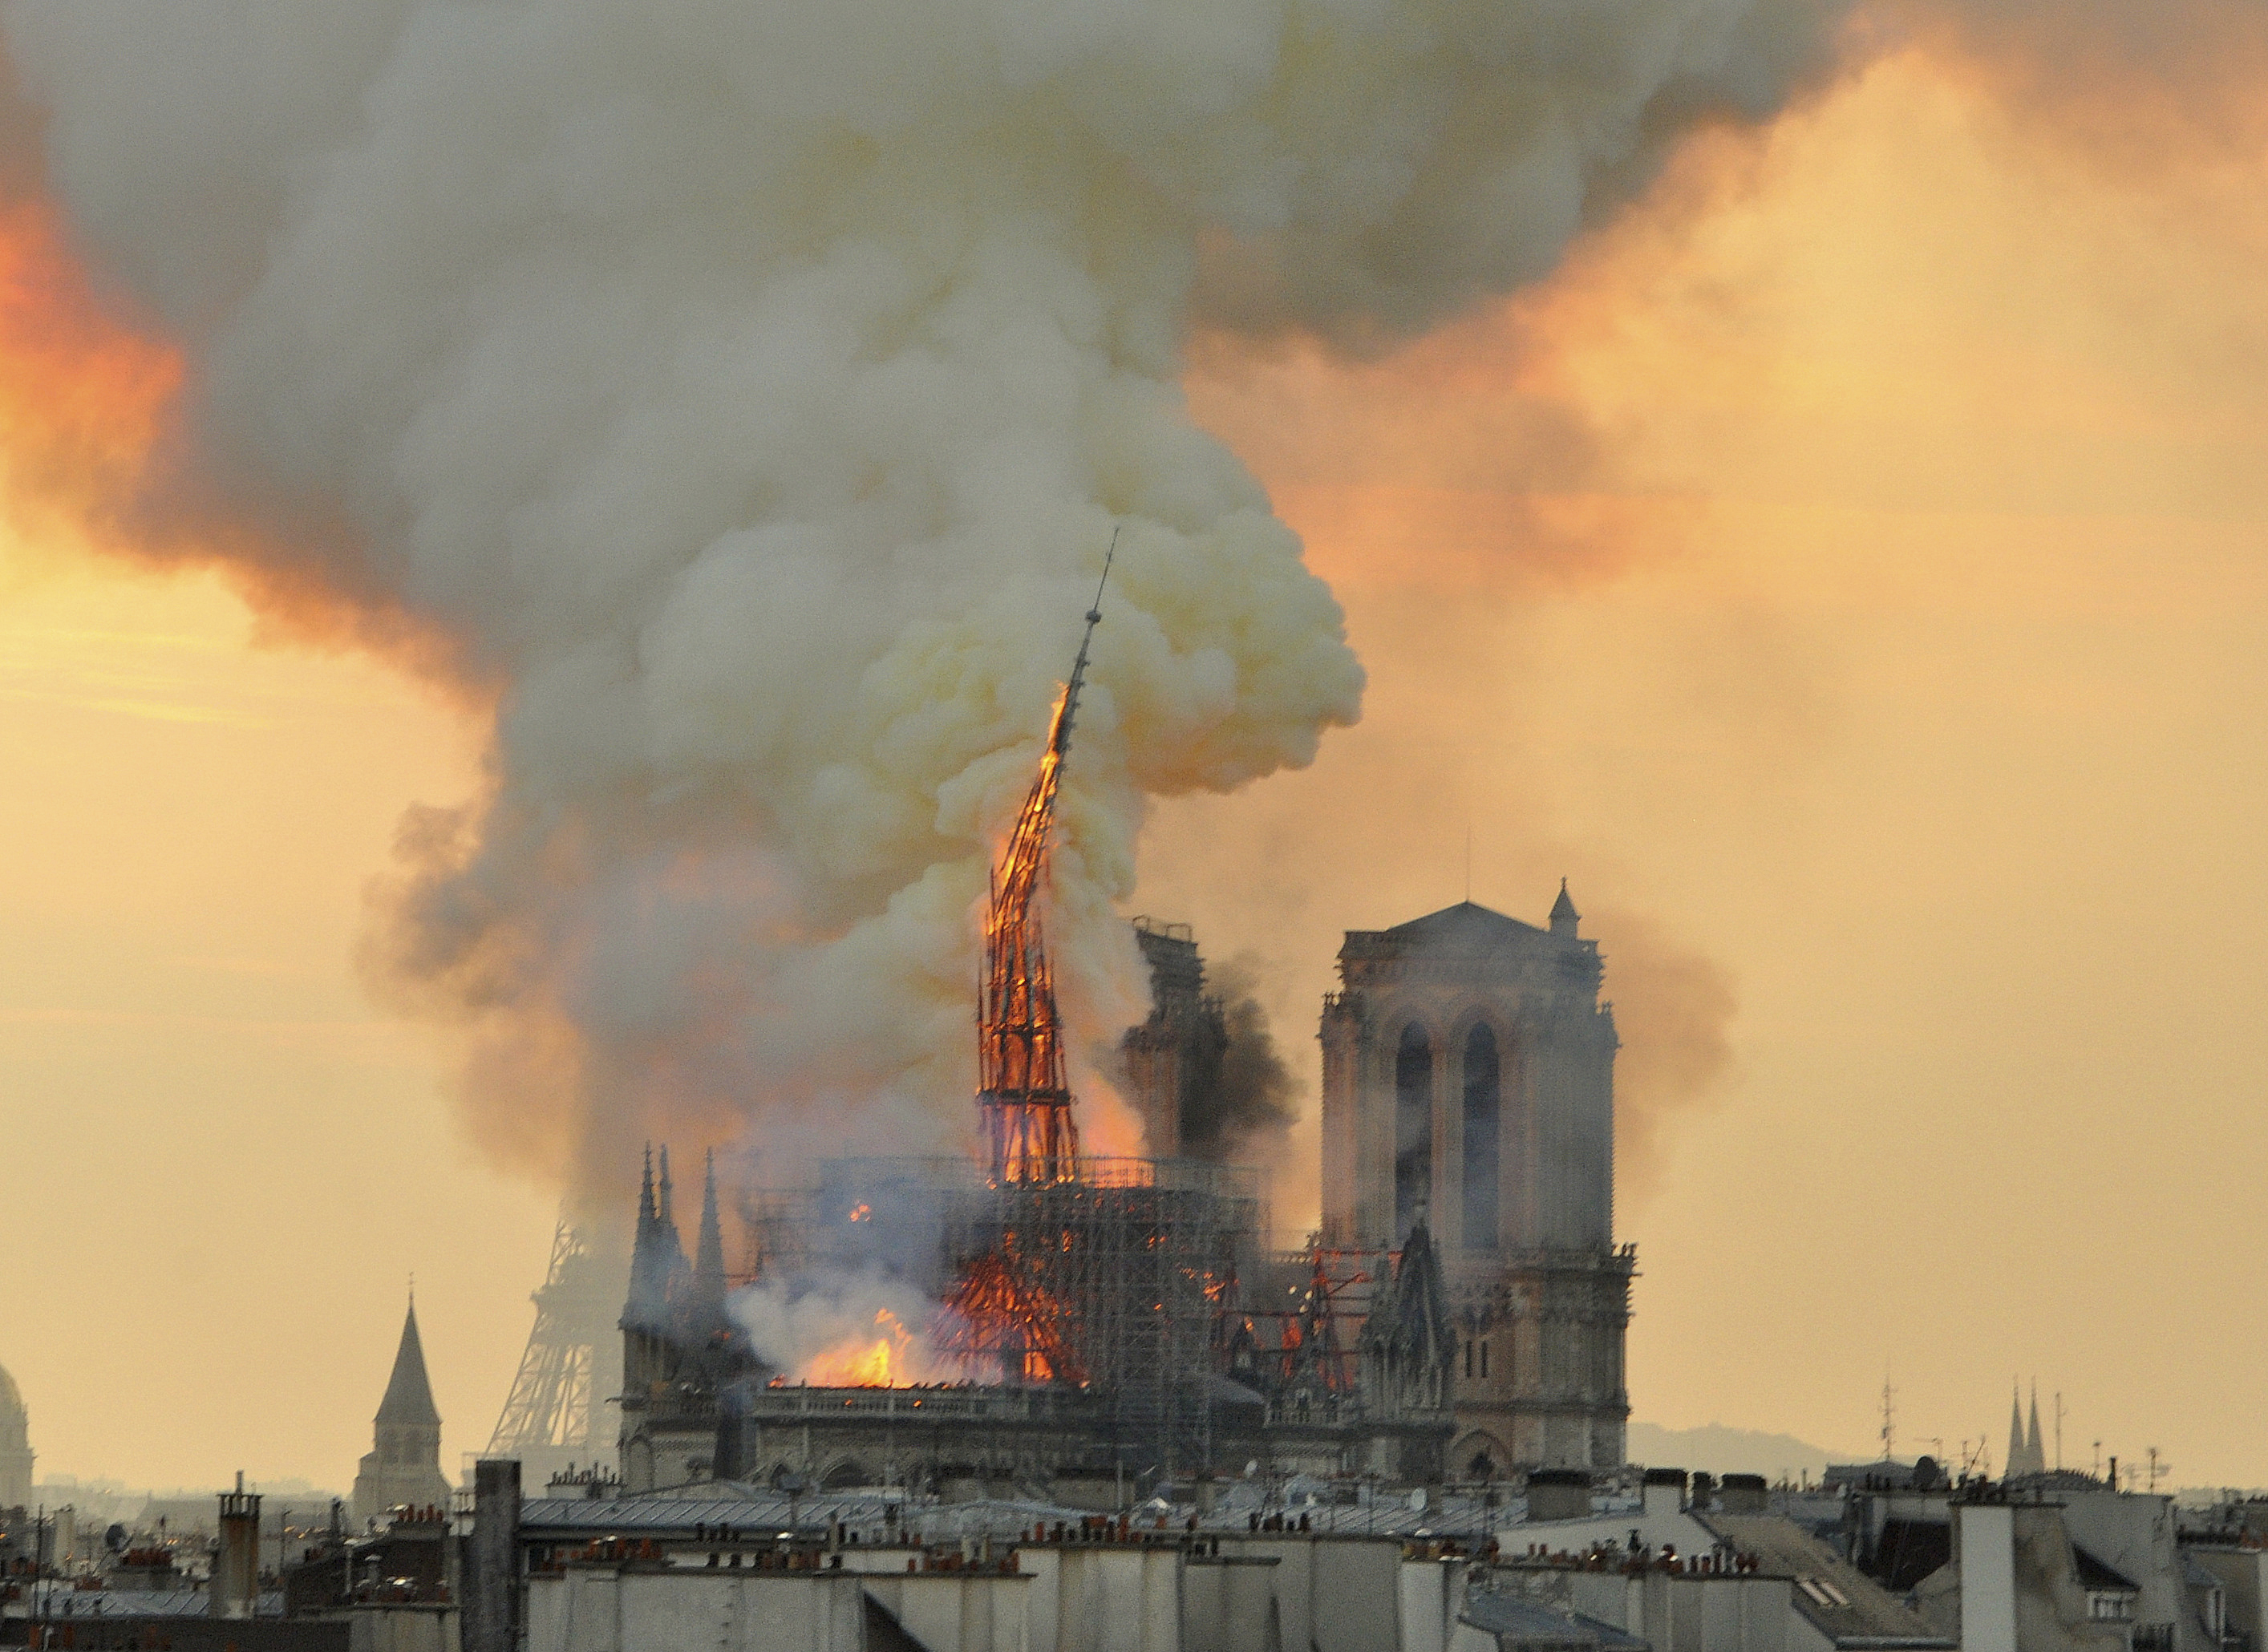 In this image made available on Tuesday April 16, 2019 flames and smoke rise from the blaze as the spire starts to topple on Notre Dame cathedral in Paris, Monday, April 15, 2019. An inferno that raged through Notre Dame Cathedral for more than 12 hours destroyed its spire and its roof but spared its twin medieval bell towers, and a frantic rescue effort saved the monument's